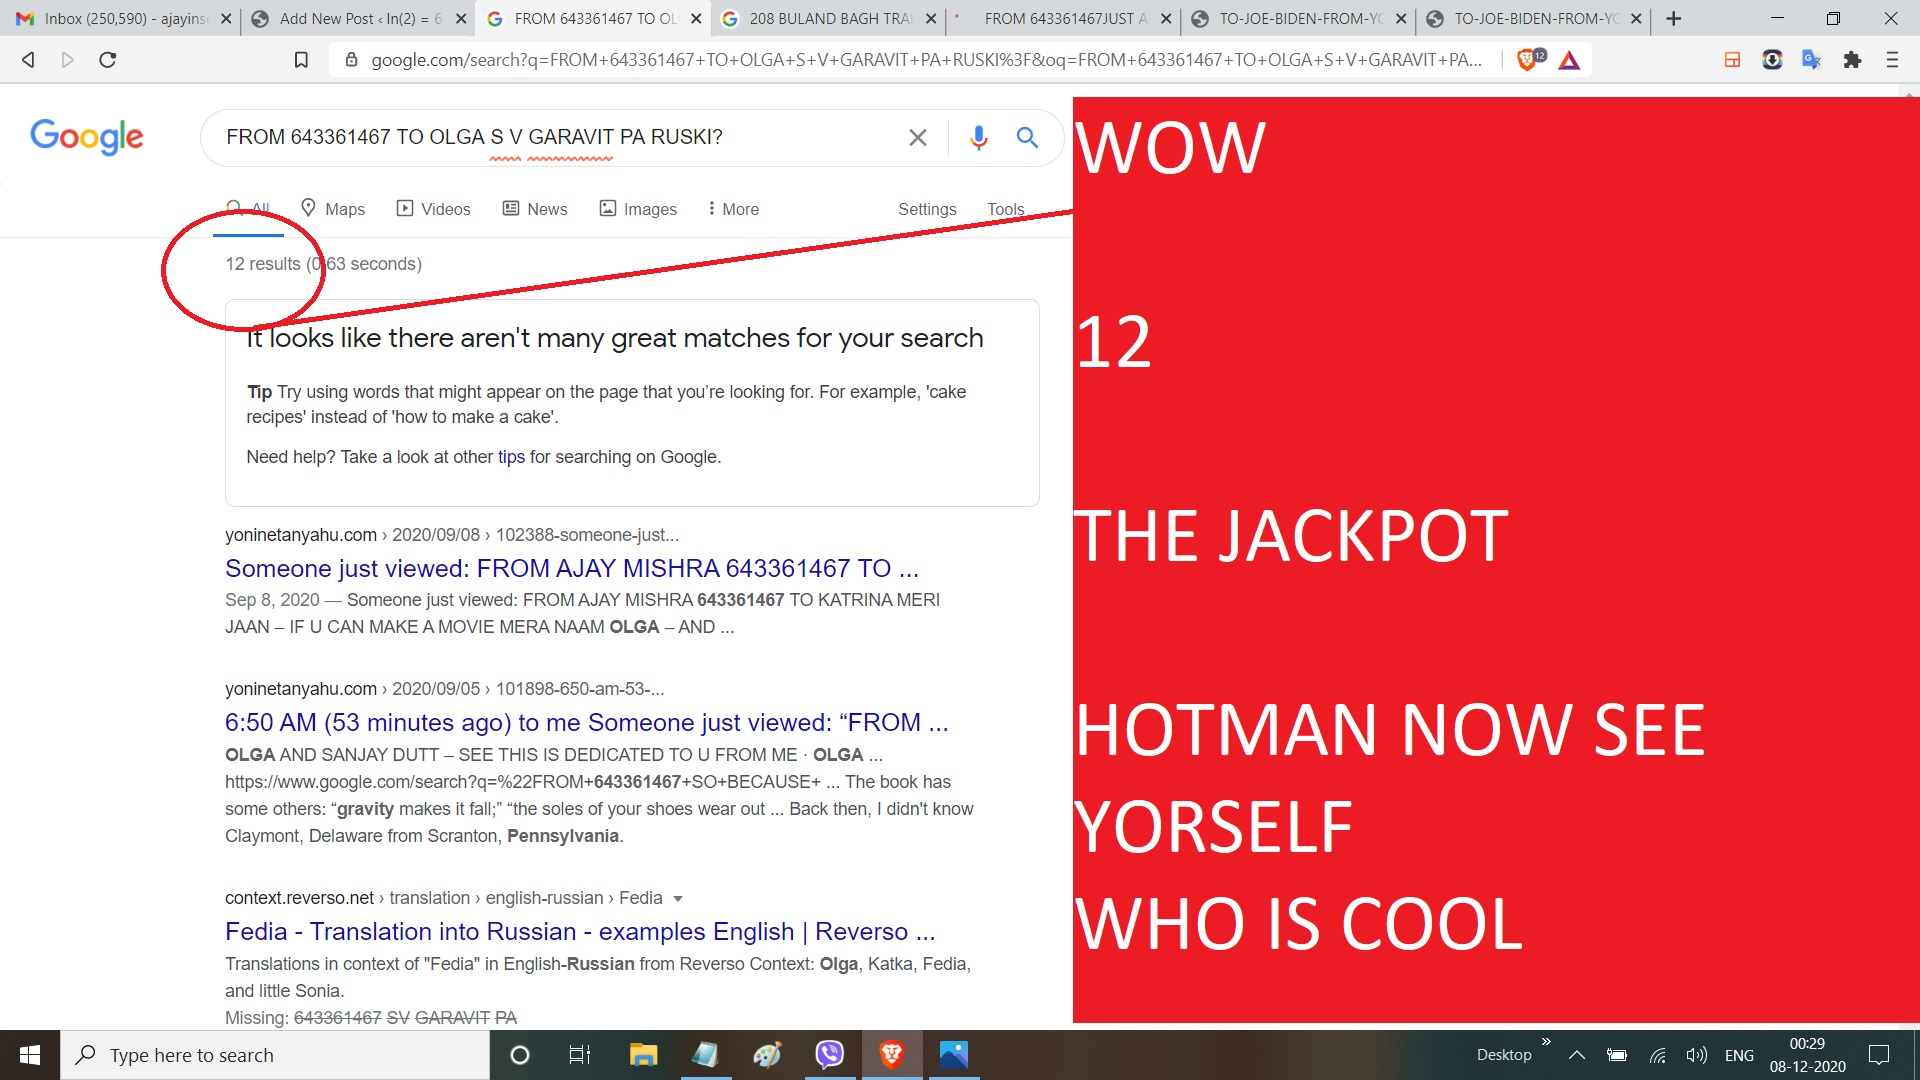 WOW 12 - THE JACKPOT - SEE YRSELF